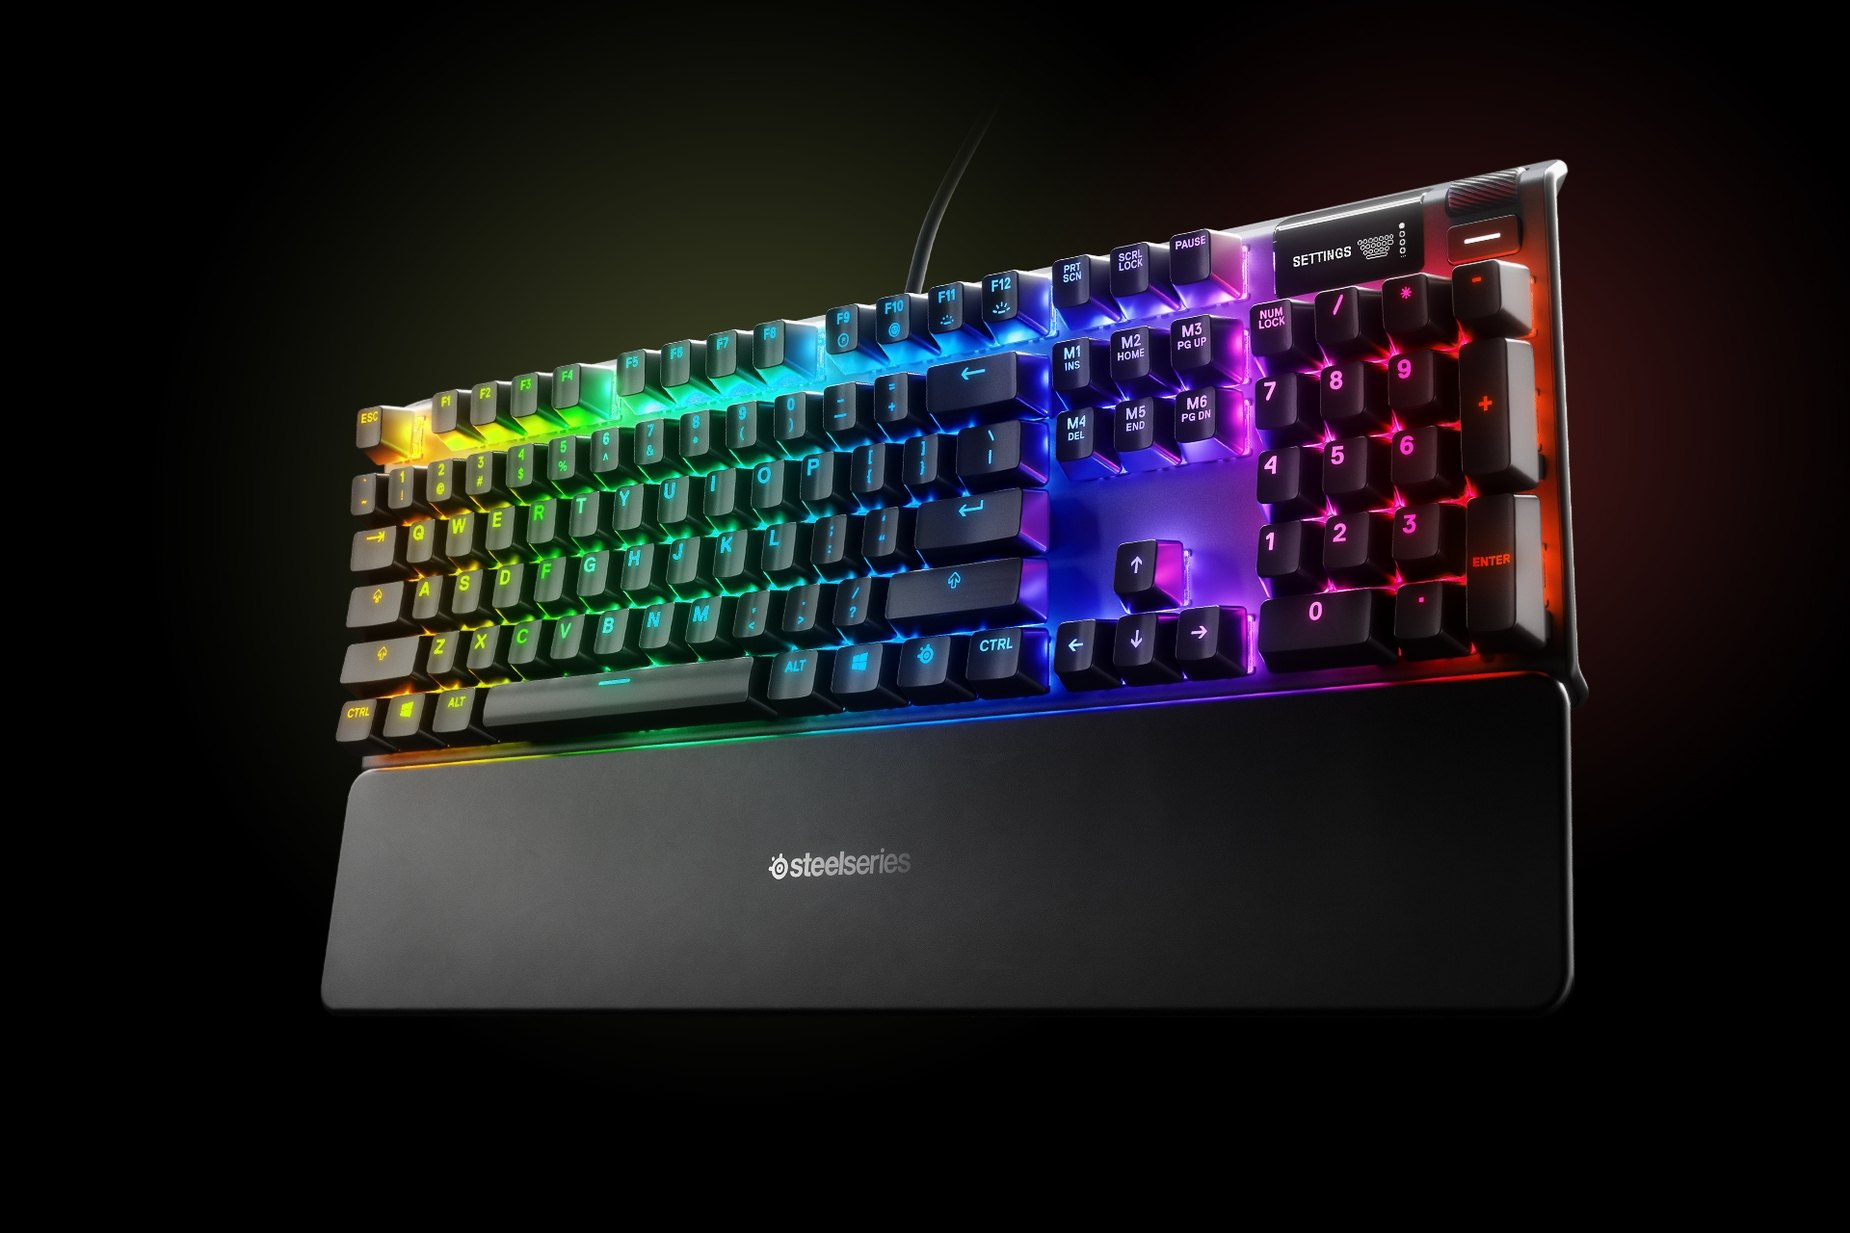 北欧语-Apex 7 (Blue Switch) gaming keyboard with the illumination lit up on dark background, also shows the OLED screen and controls used to change settings and adjust audio